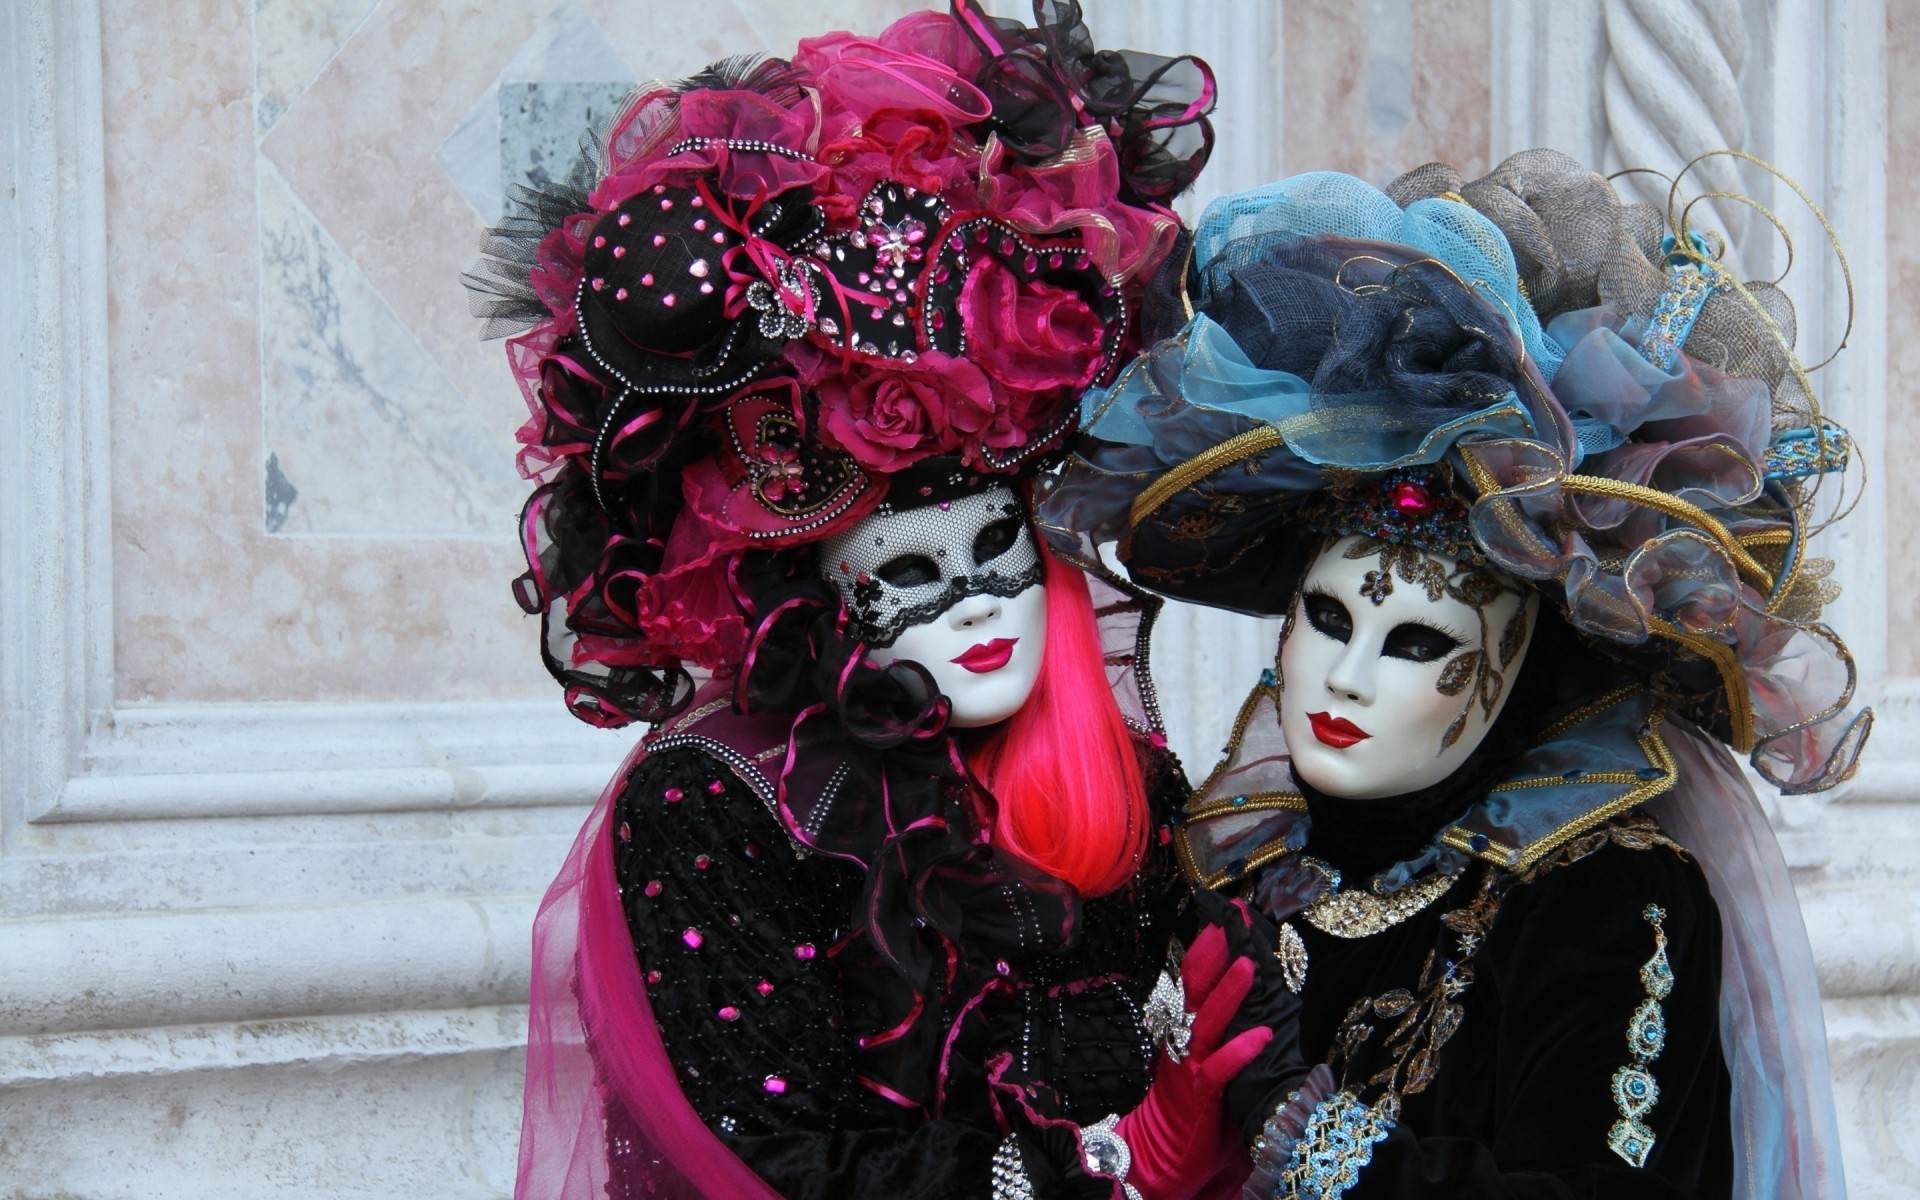 italy masquerade costume mask disguise venetian mardi gras decoration fest mystery festival celebration party halloween fantasy theater hide traditional romantic clown venice carnival venice venice mask